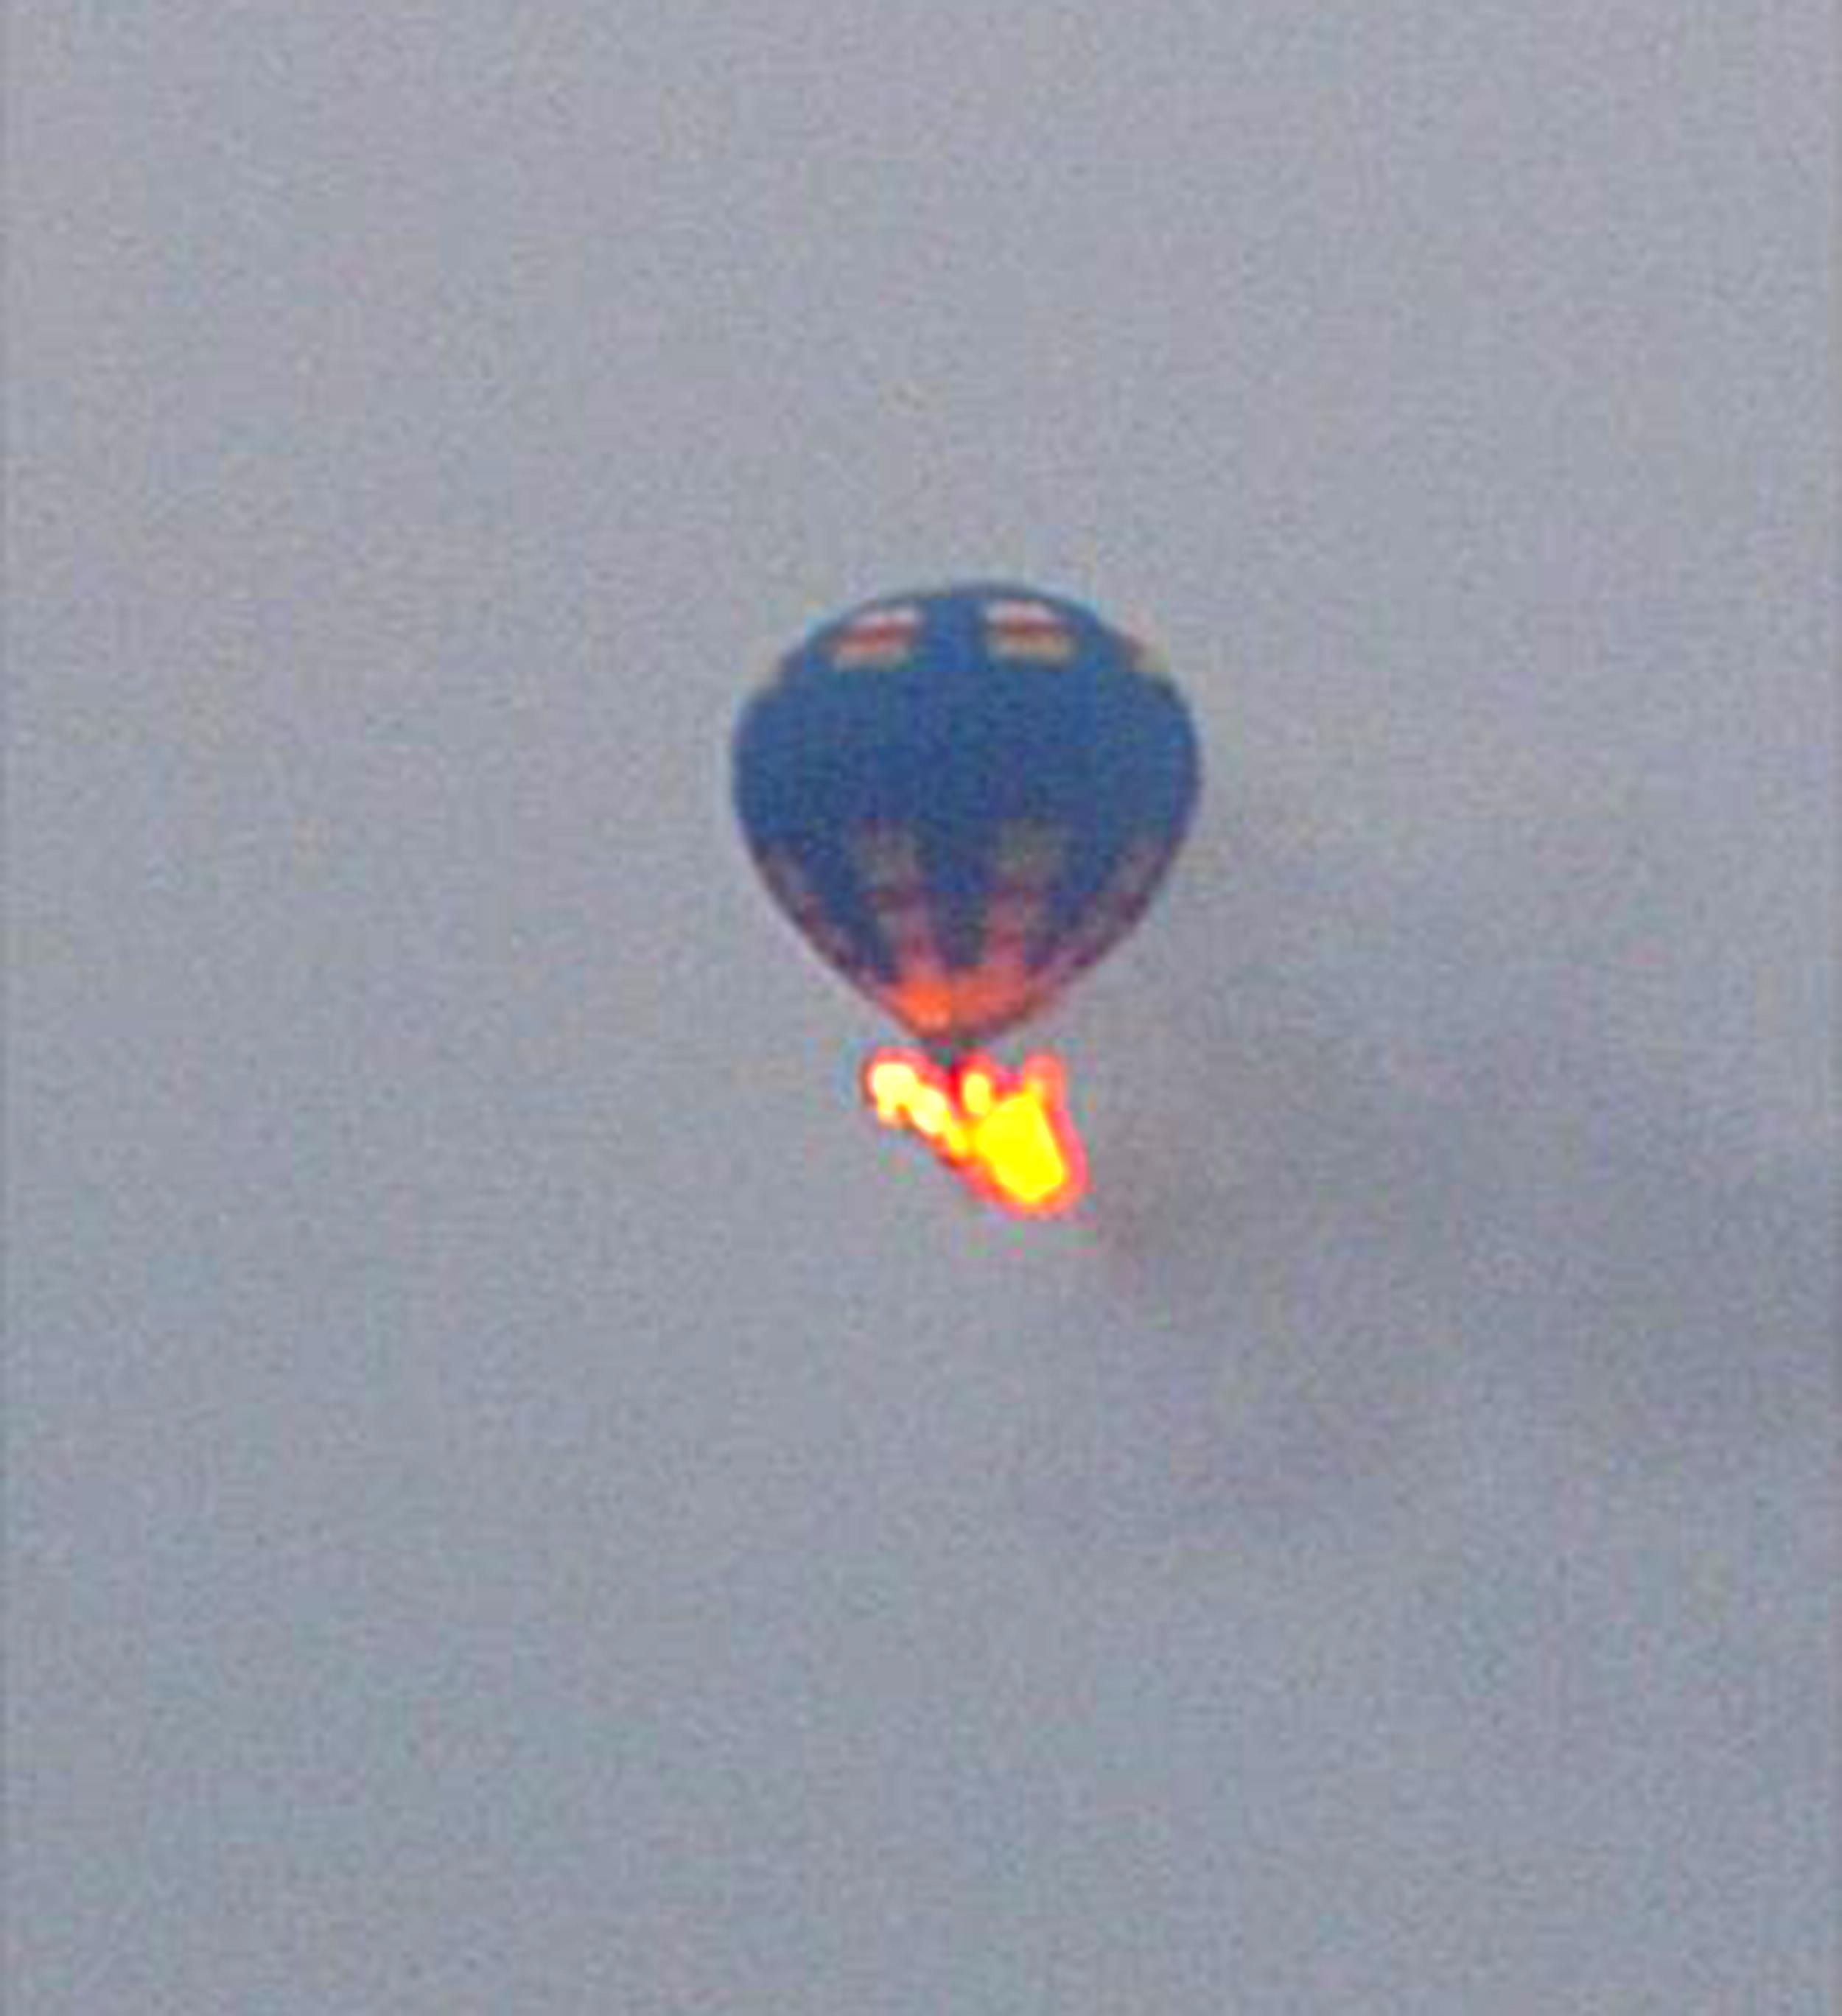 Image: A hot air balloon caught fire and crashed in Virginia